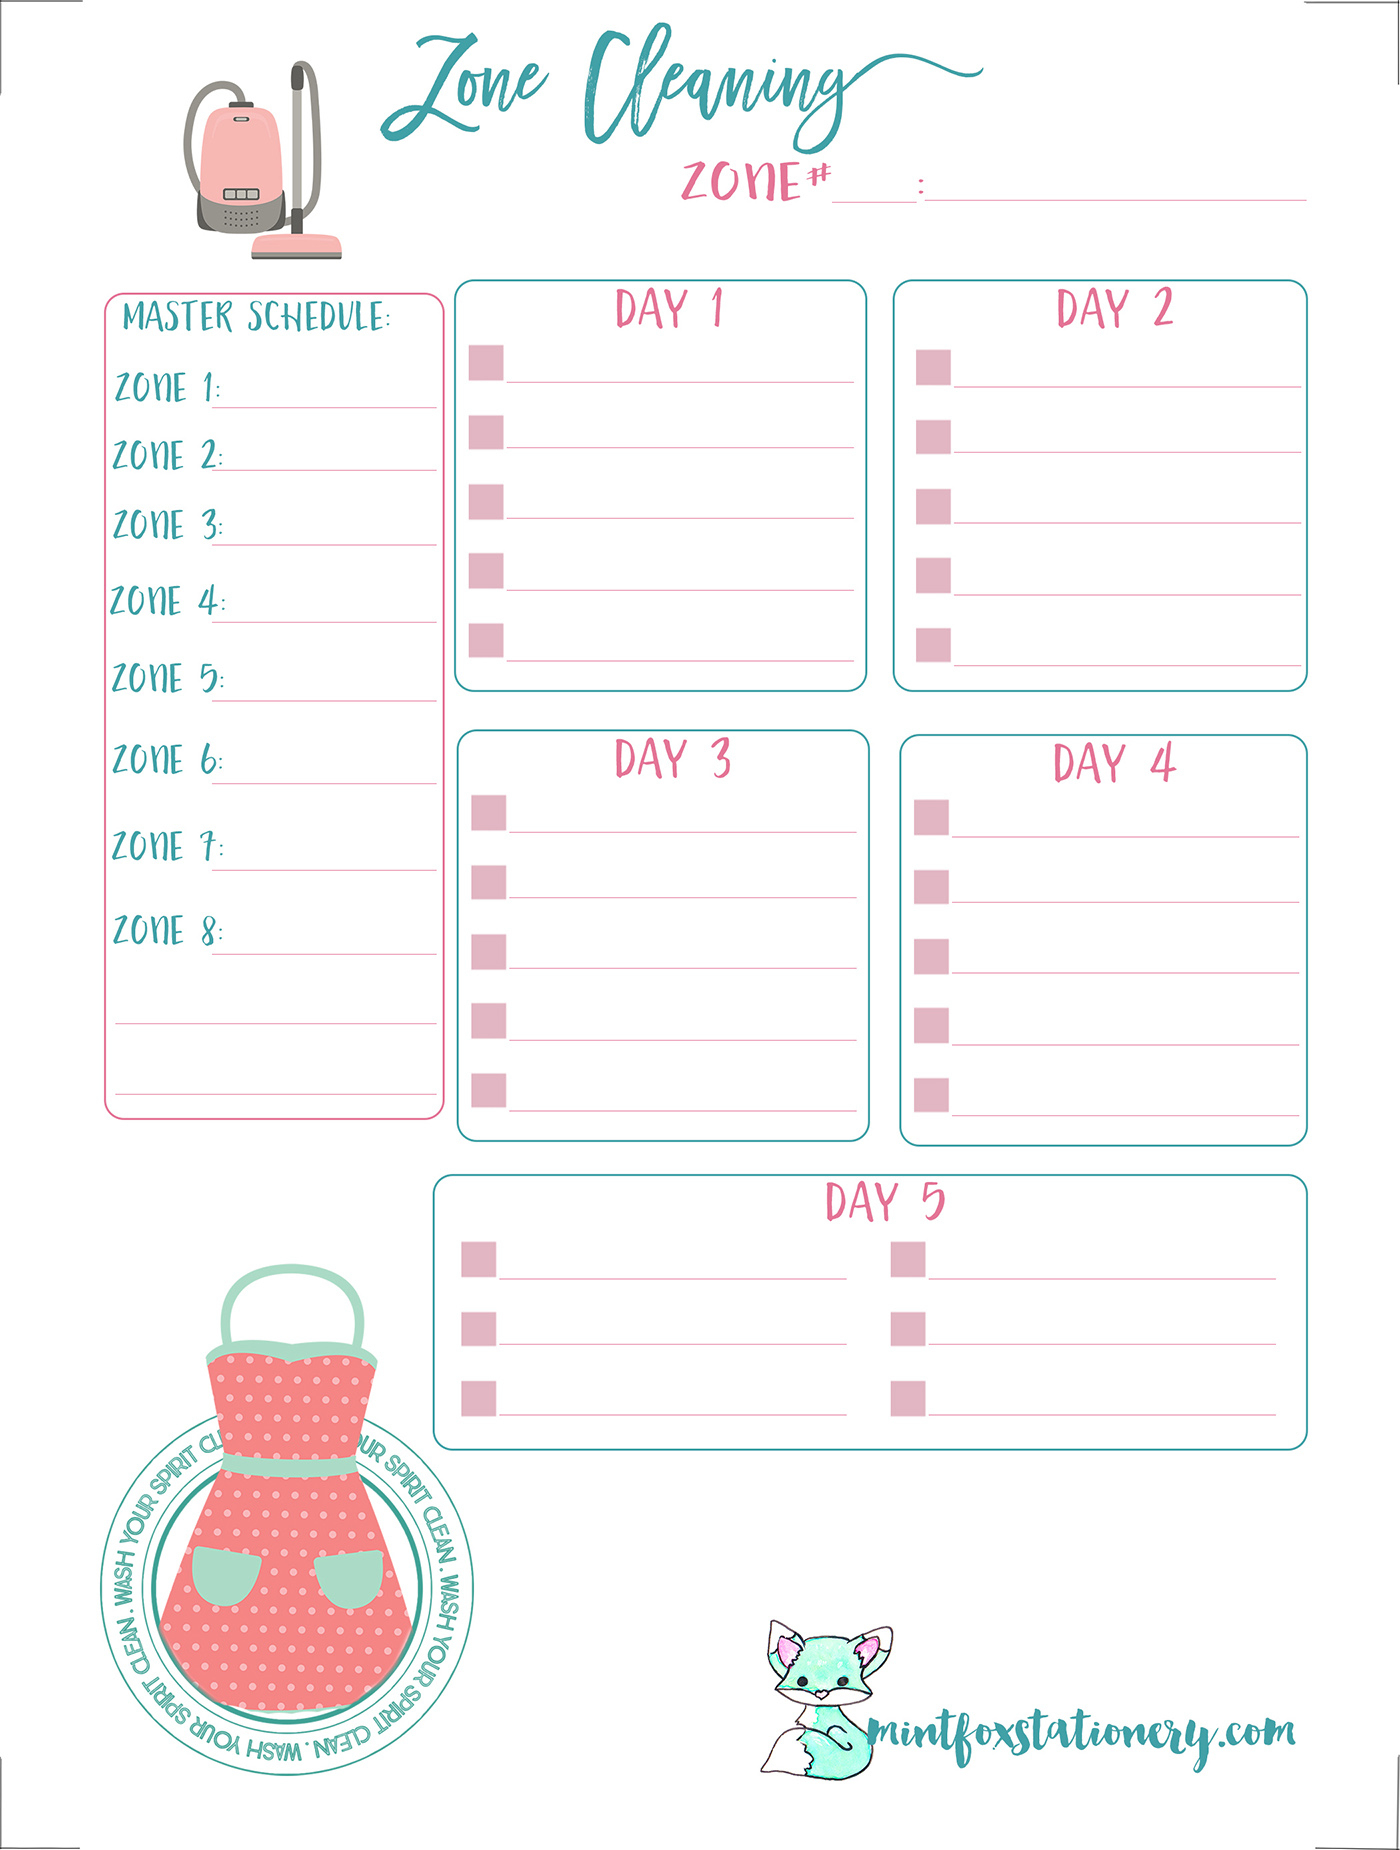 Zone Cleaning Printable Personal Size Insert - Free Printable Planner Inserts